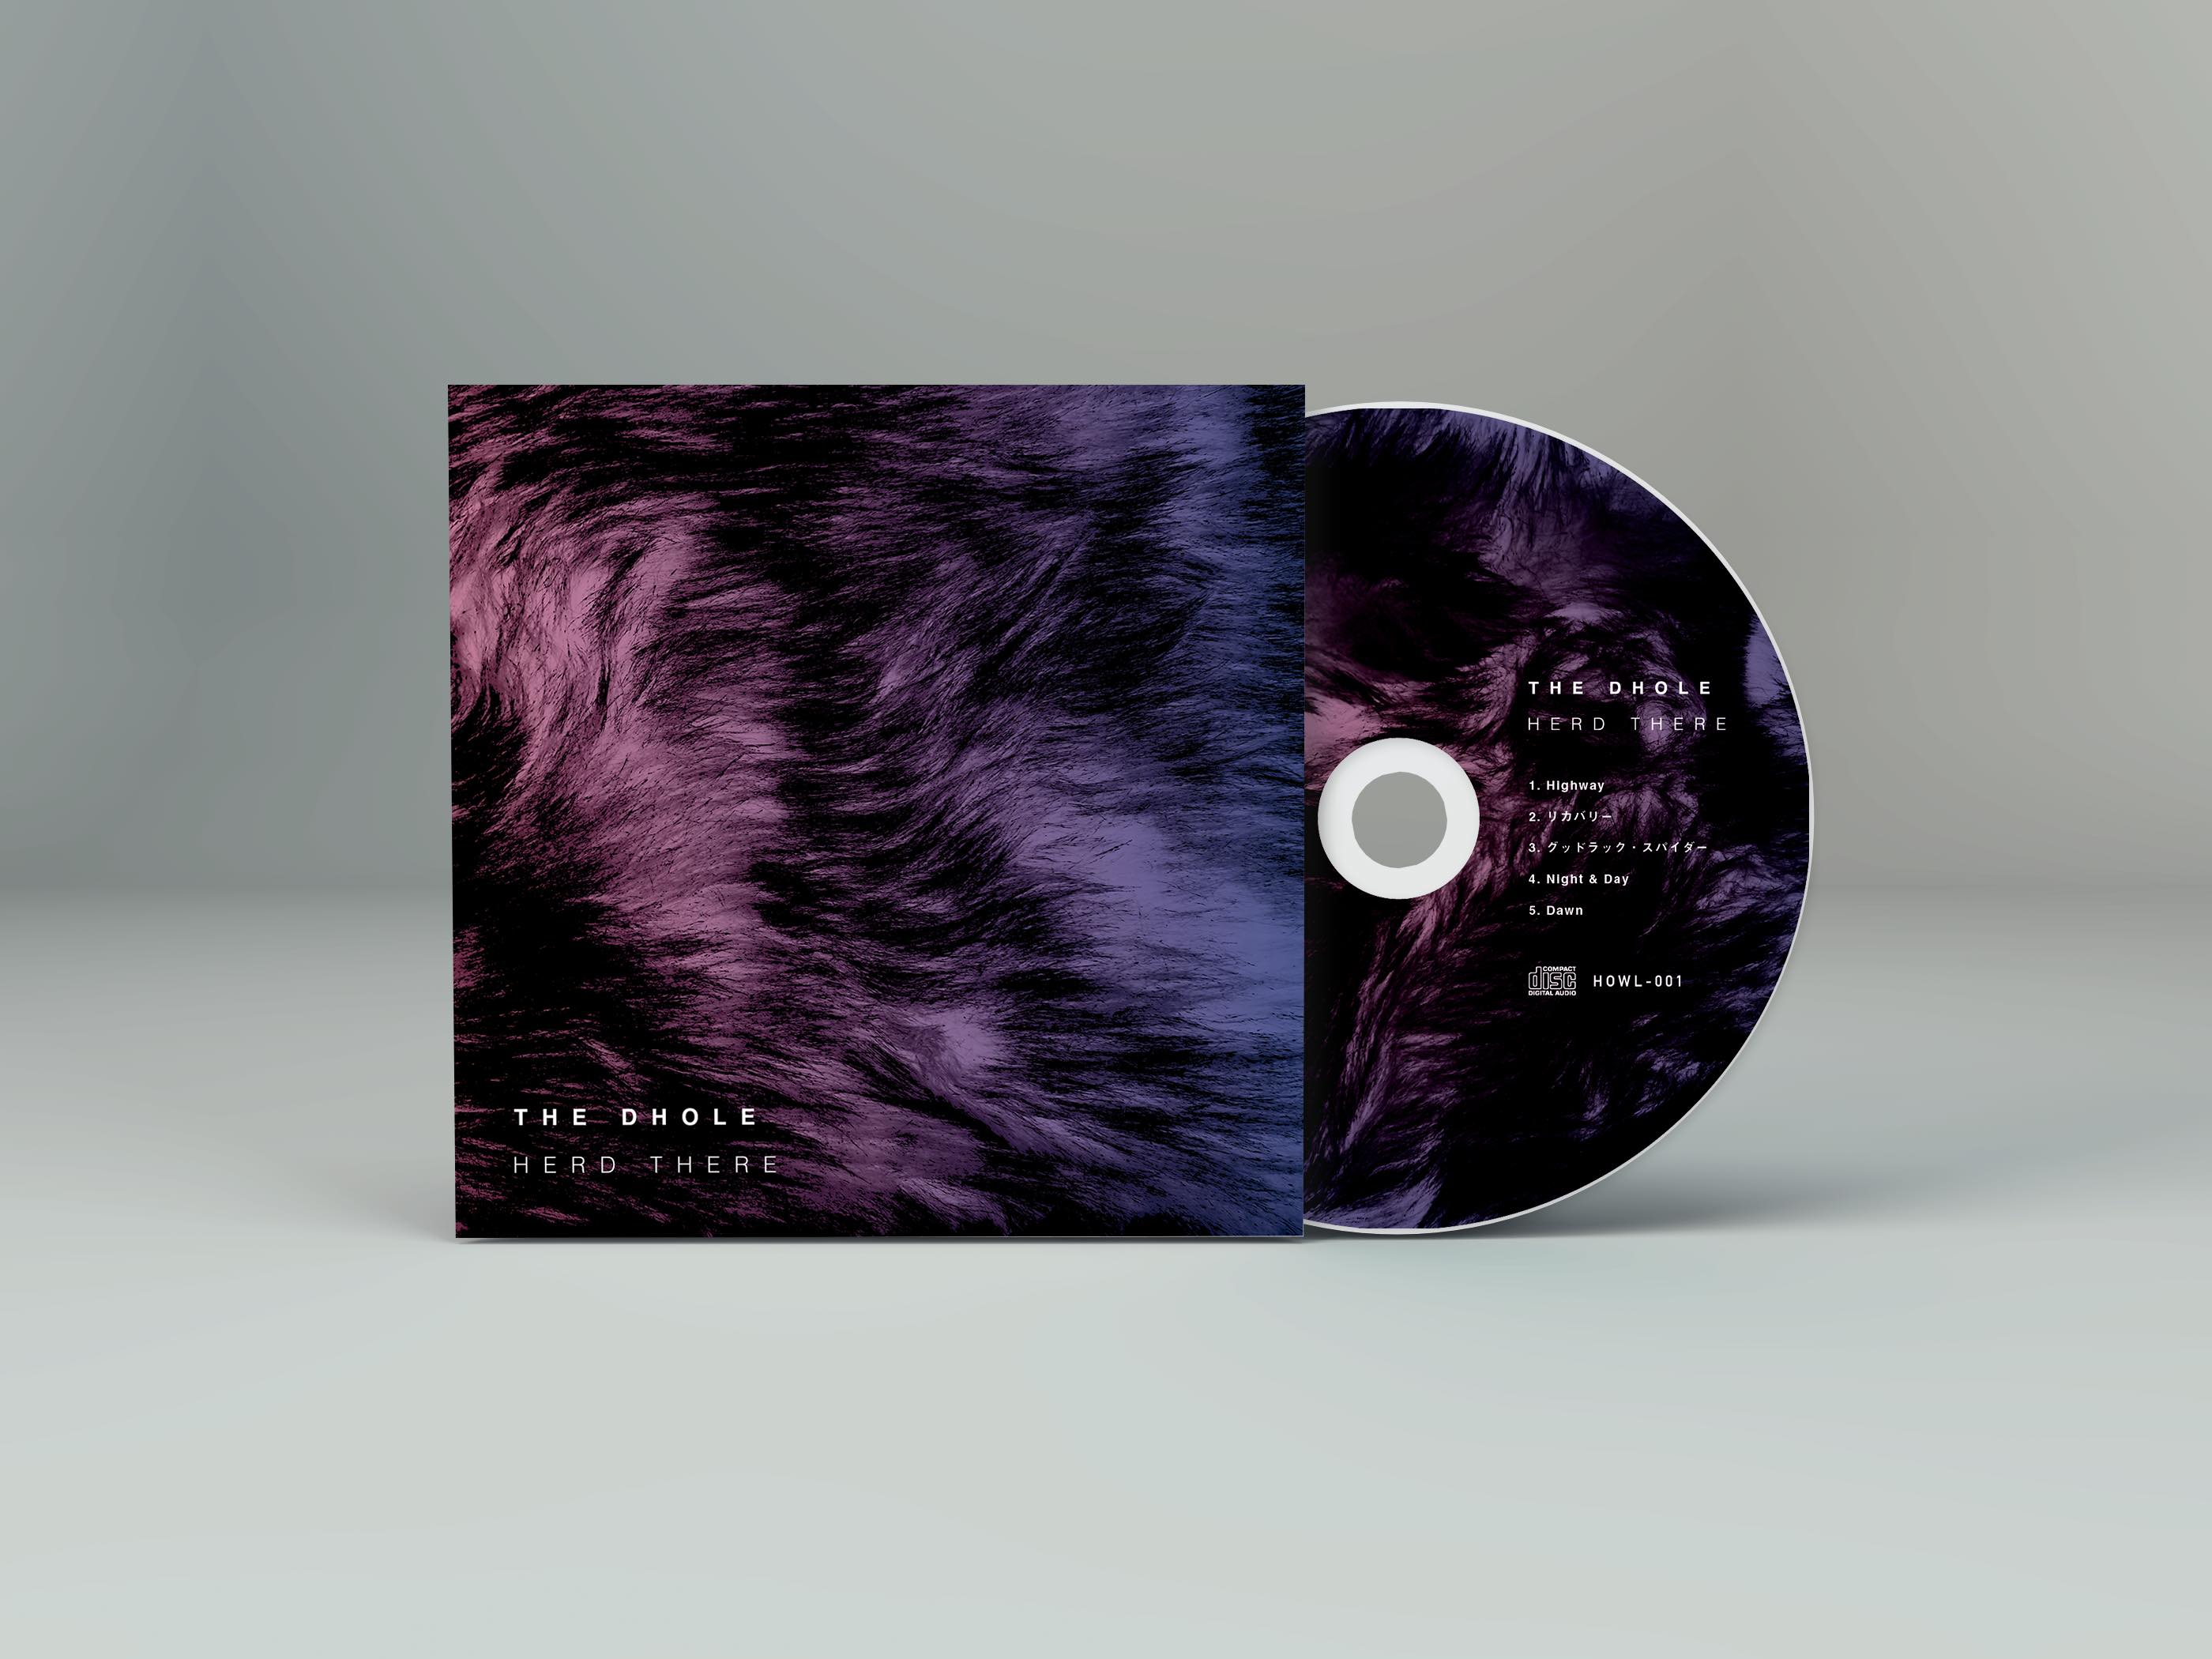 th_CD-Artwork-Mockup